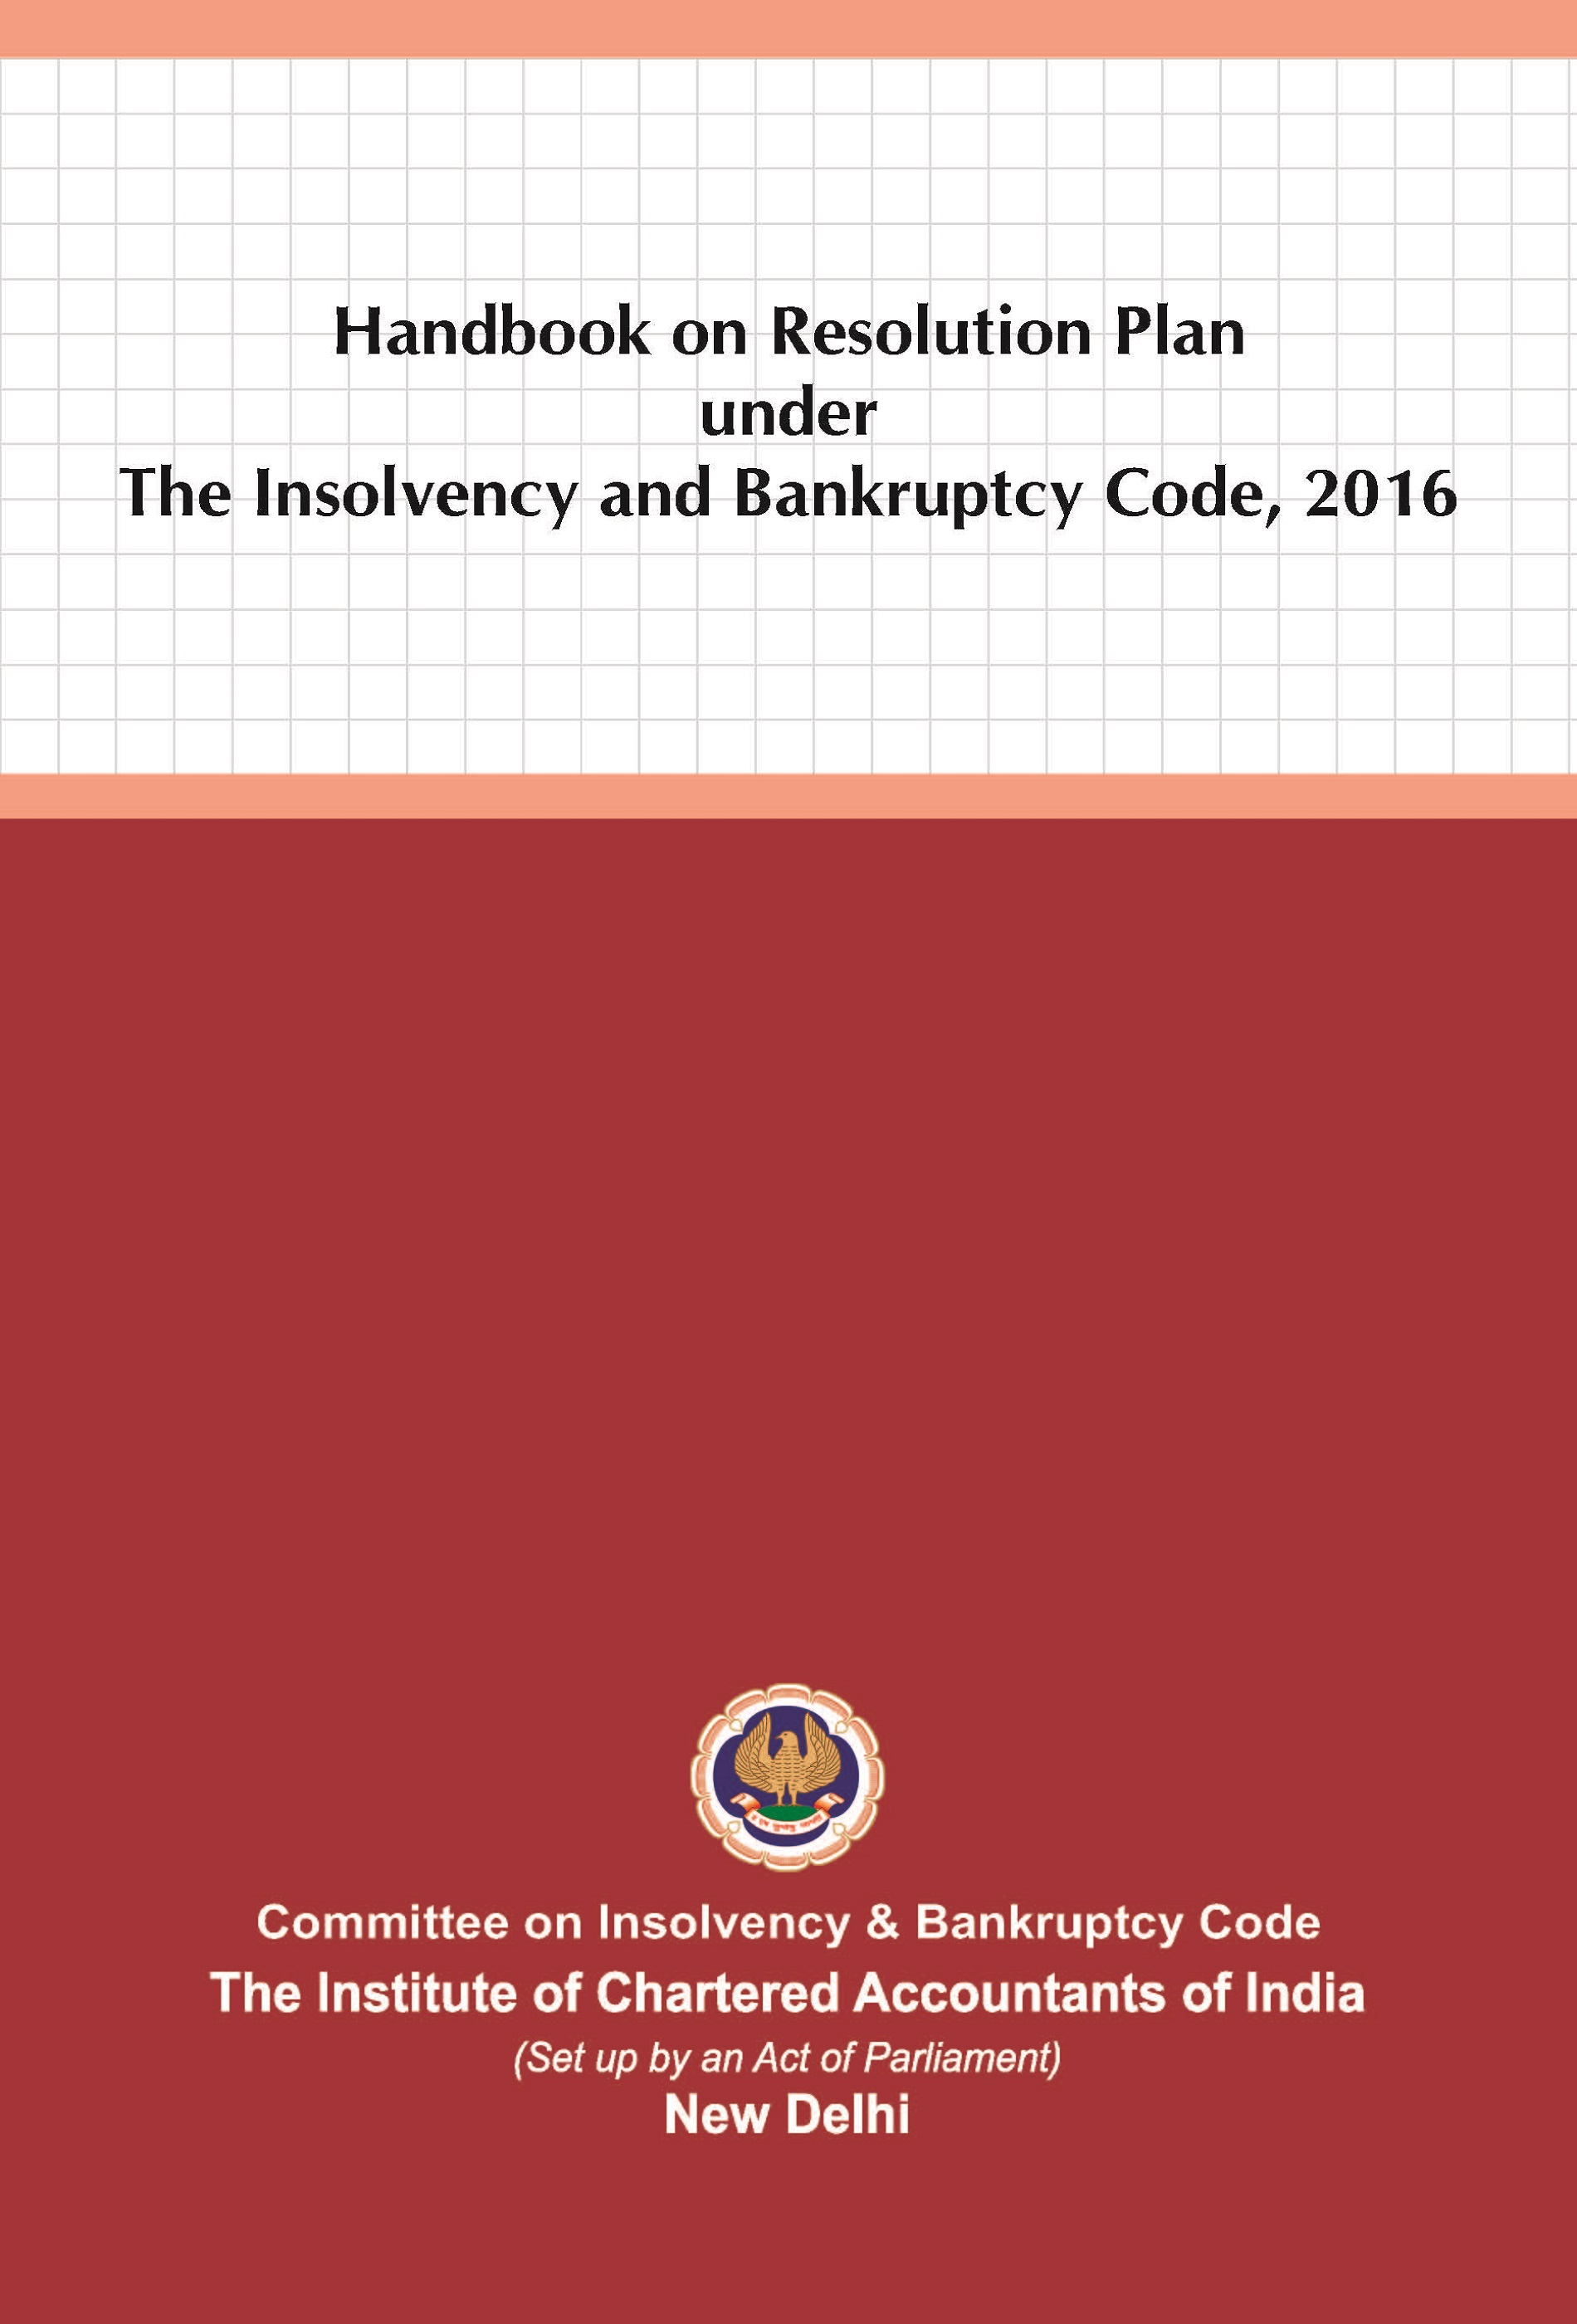 Handbook on Resolution Plan under The Insolvency and Bankruptcy Code, 2016 (June, 2021)